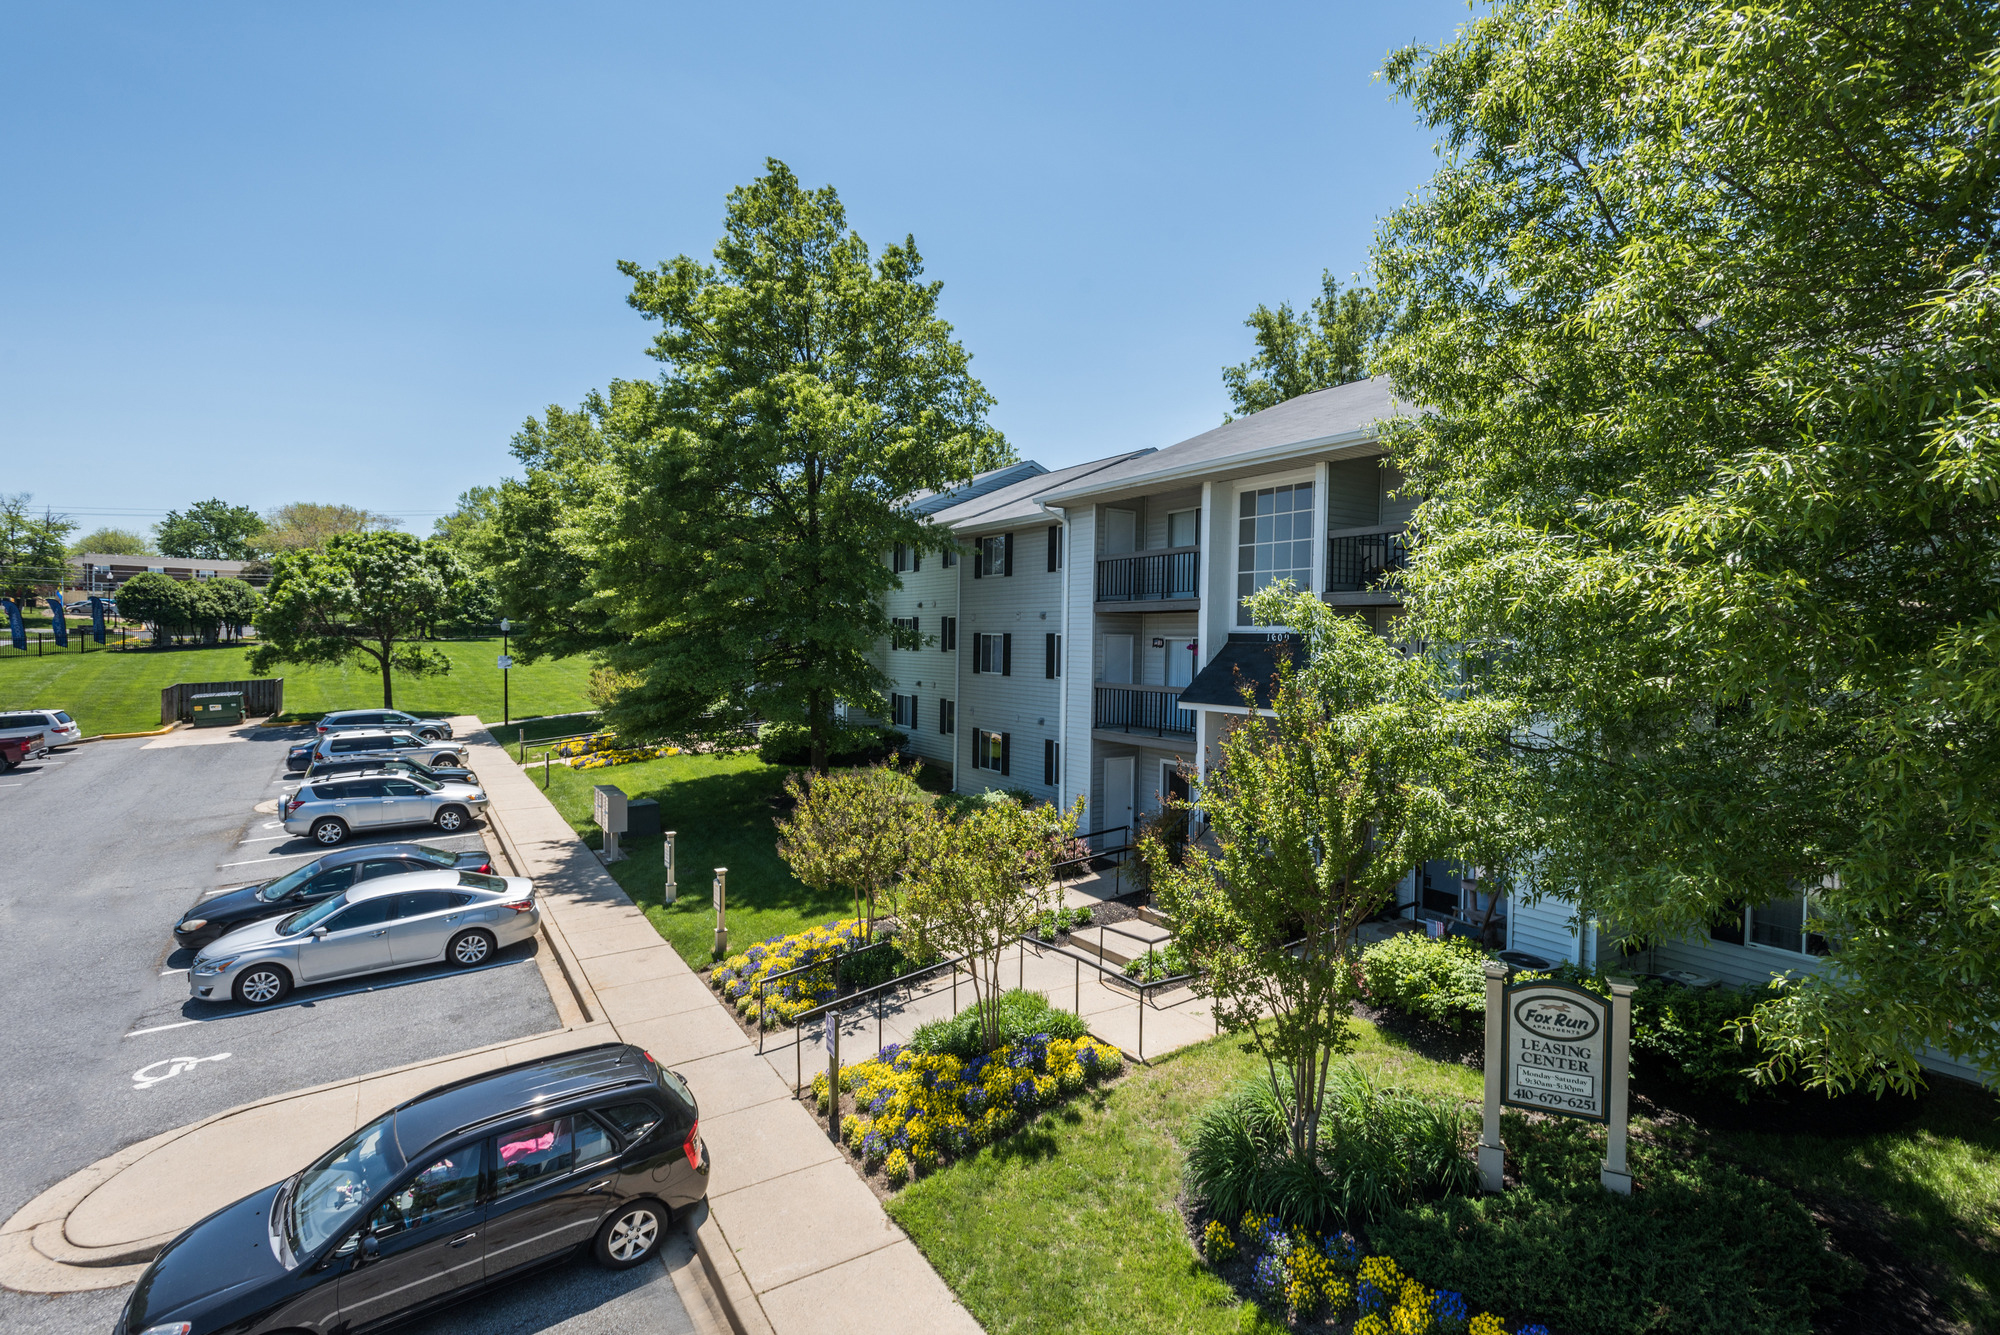 Fox Run Apartments in Edgewood, MD 21040:Apartment Community